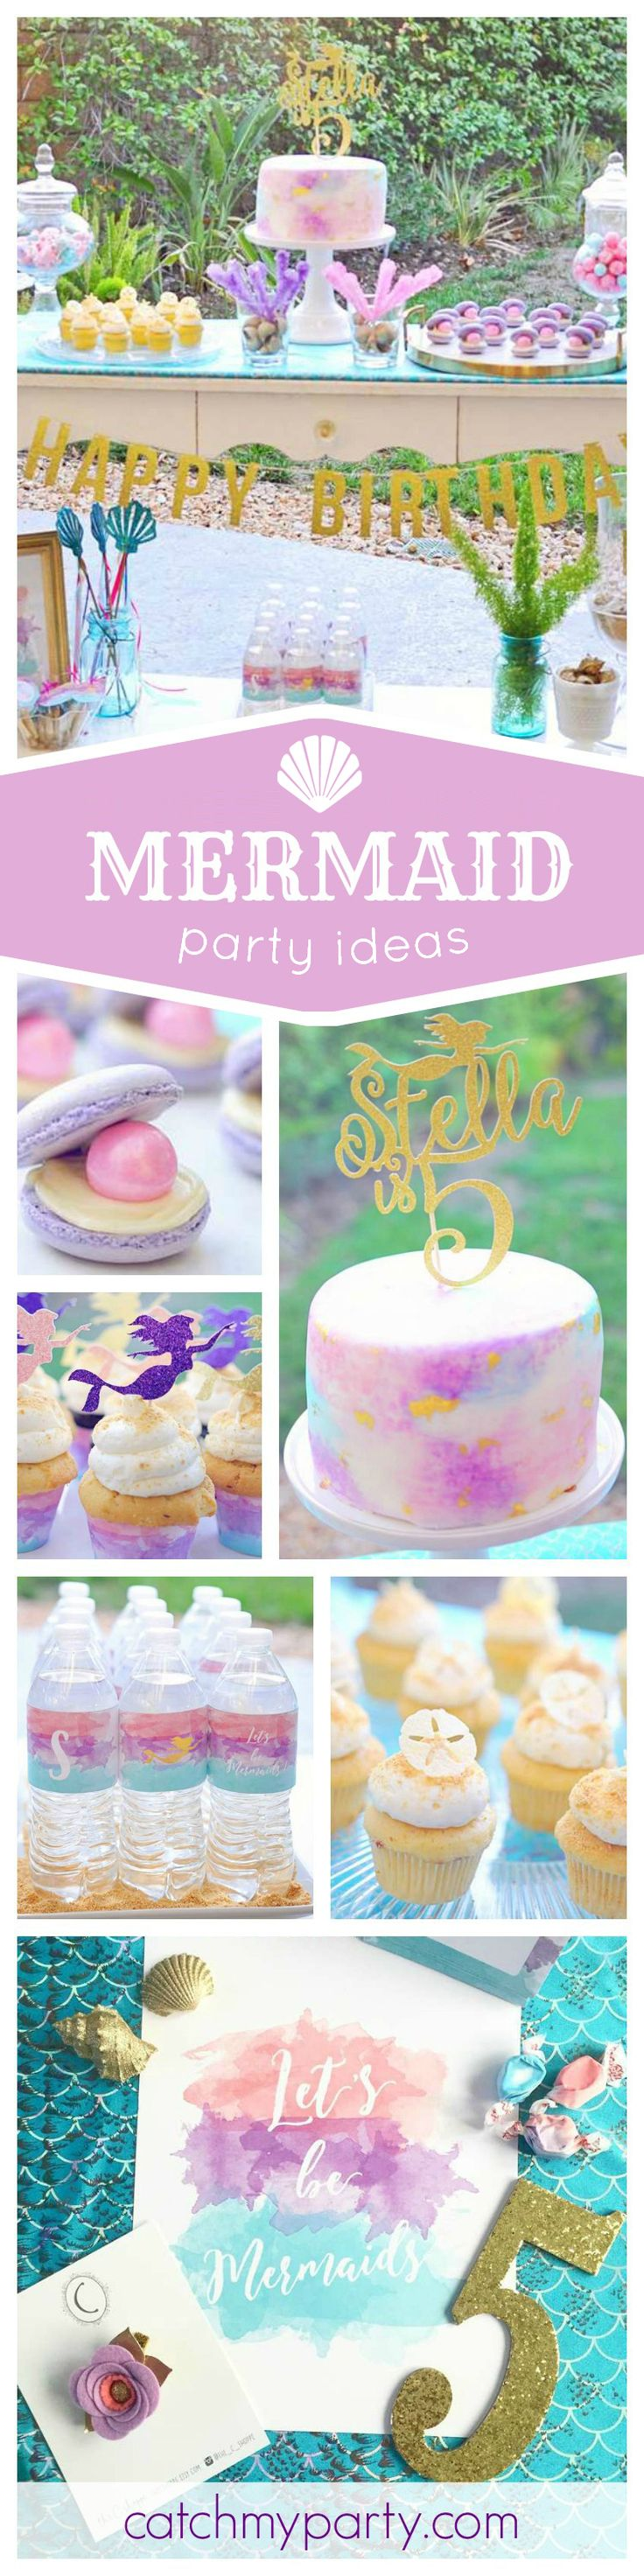 Girls love mermaid parties & this one is absolutely stunning! The desserts and toppers are gorgeous! See more party ideas and share yours at CatchMyParty.com